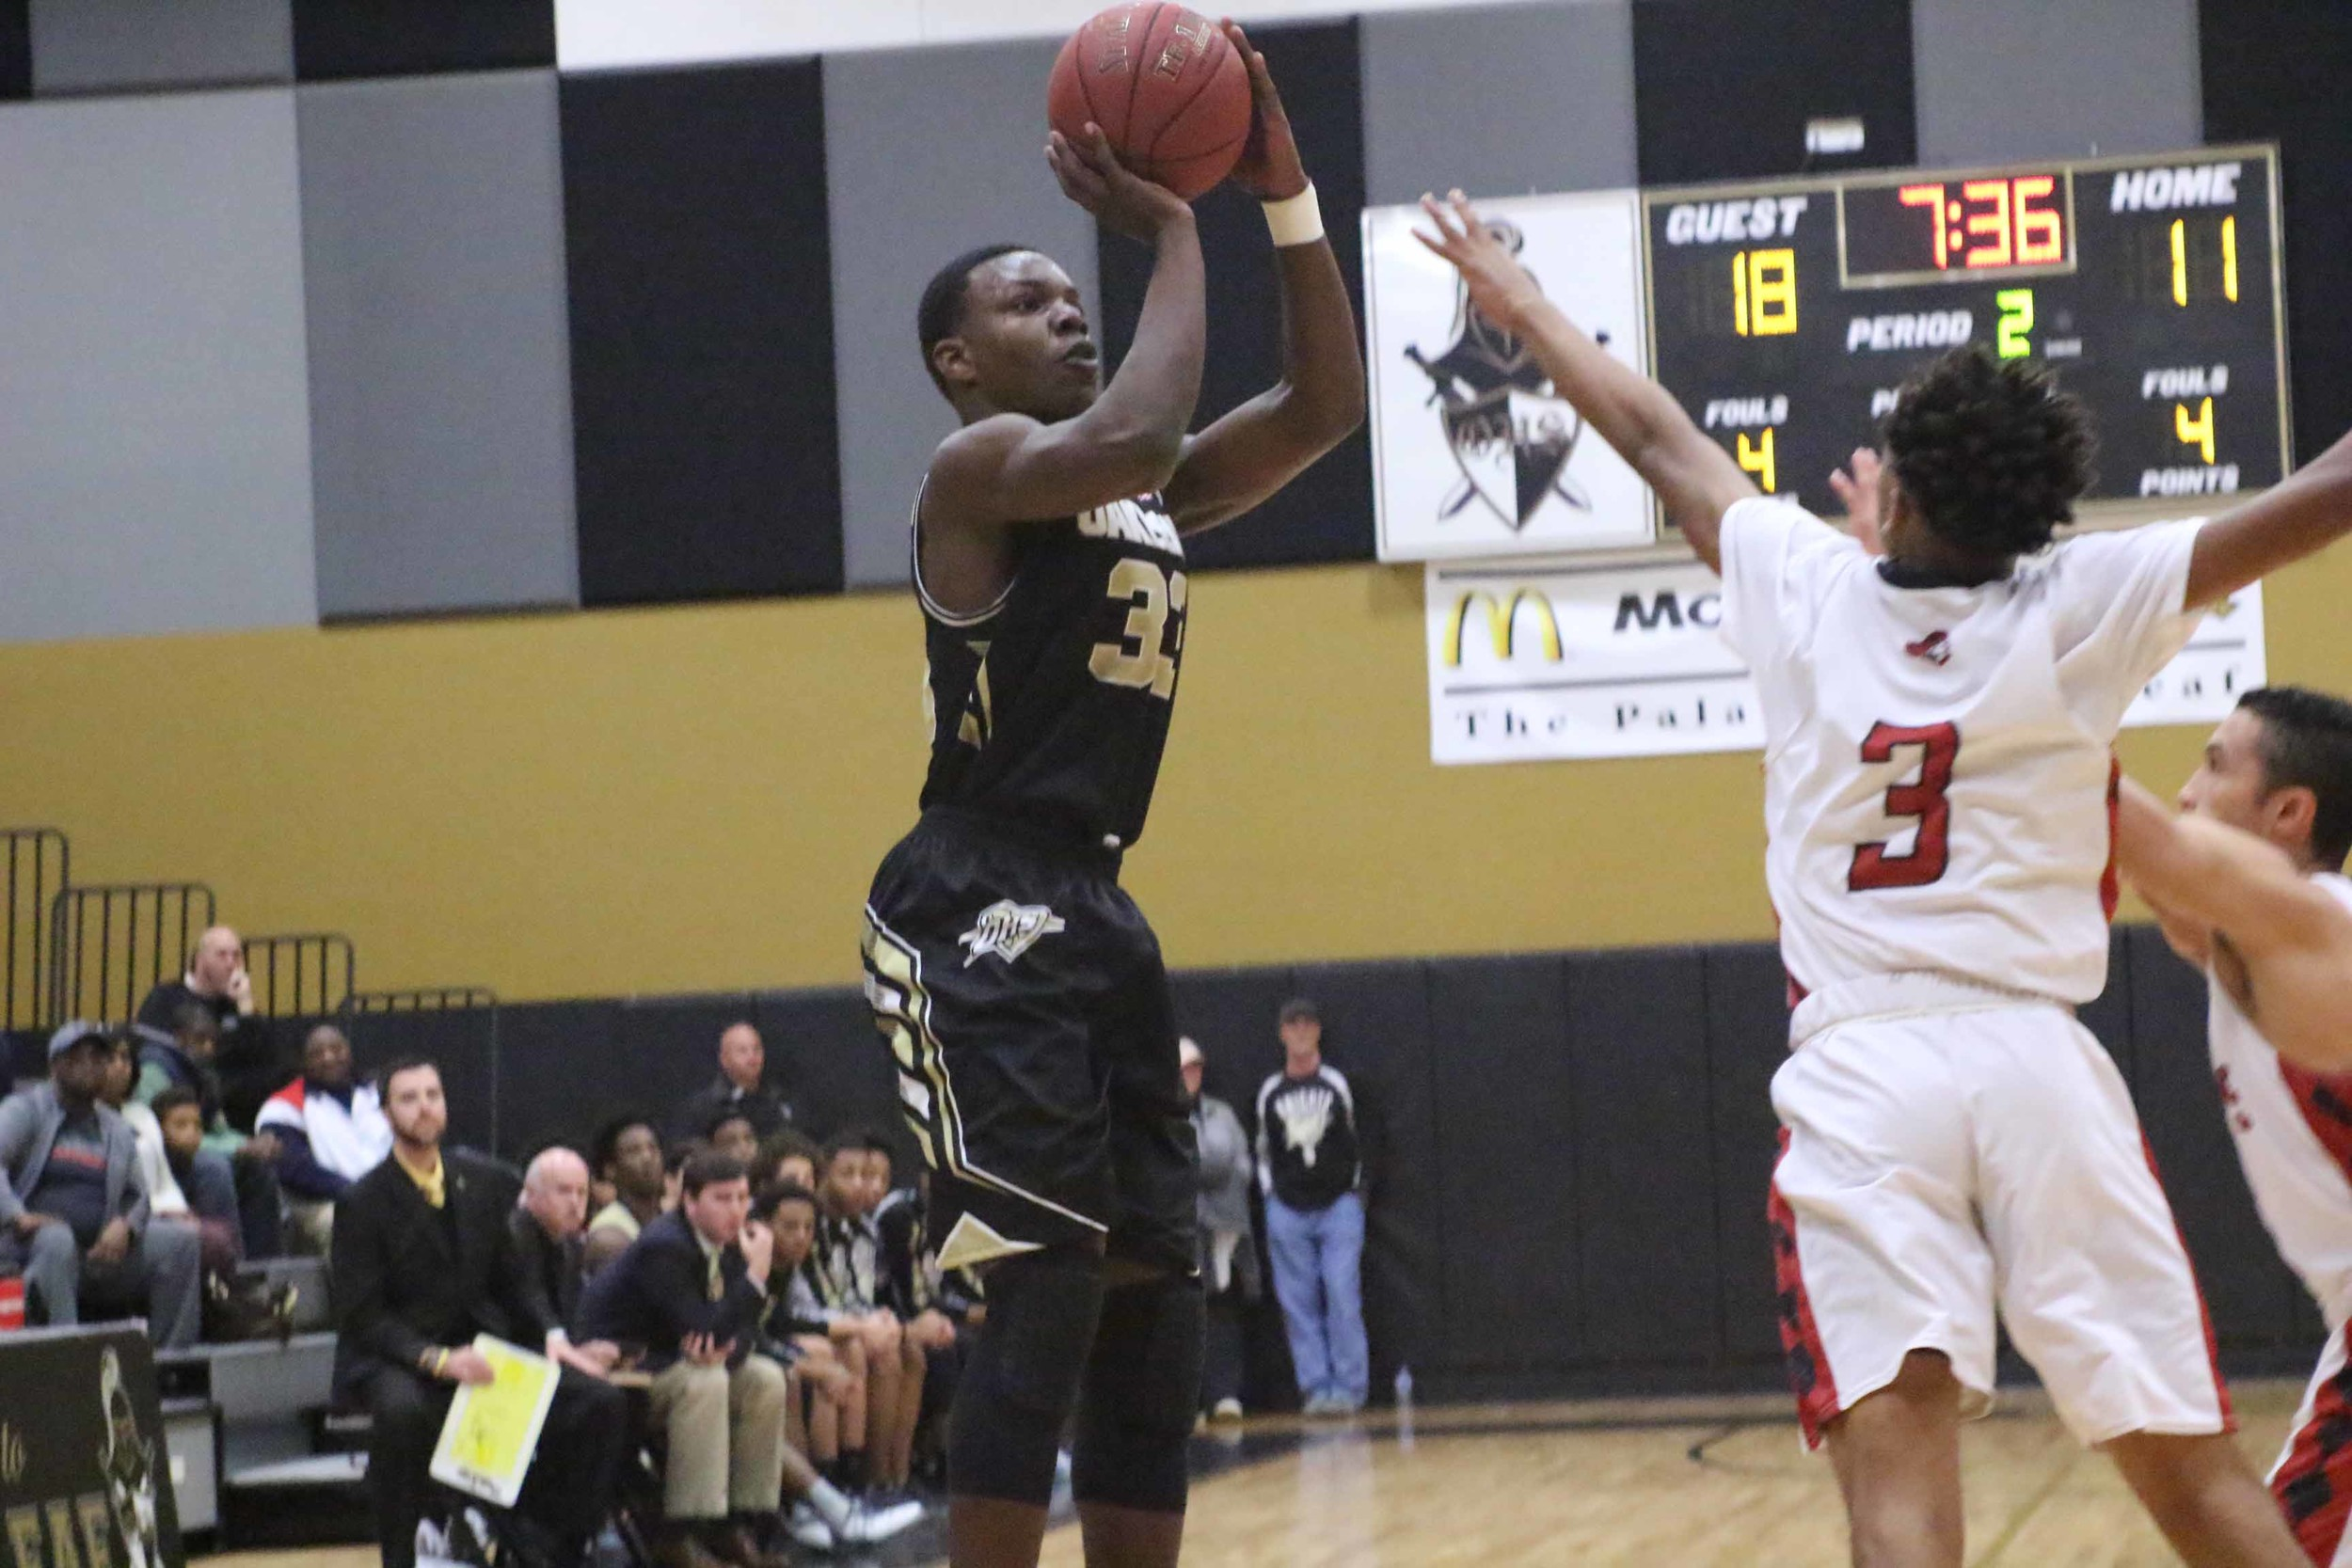 Oakleaf High junior Jonathan Bryant, above, was instrumental in putting the final touches on the Knights' district championship run with a week of high-scoring games.